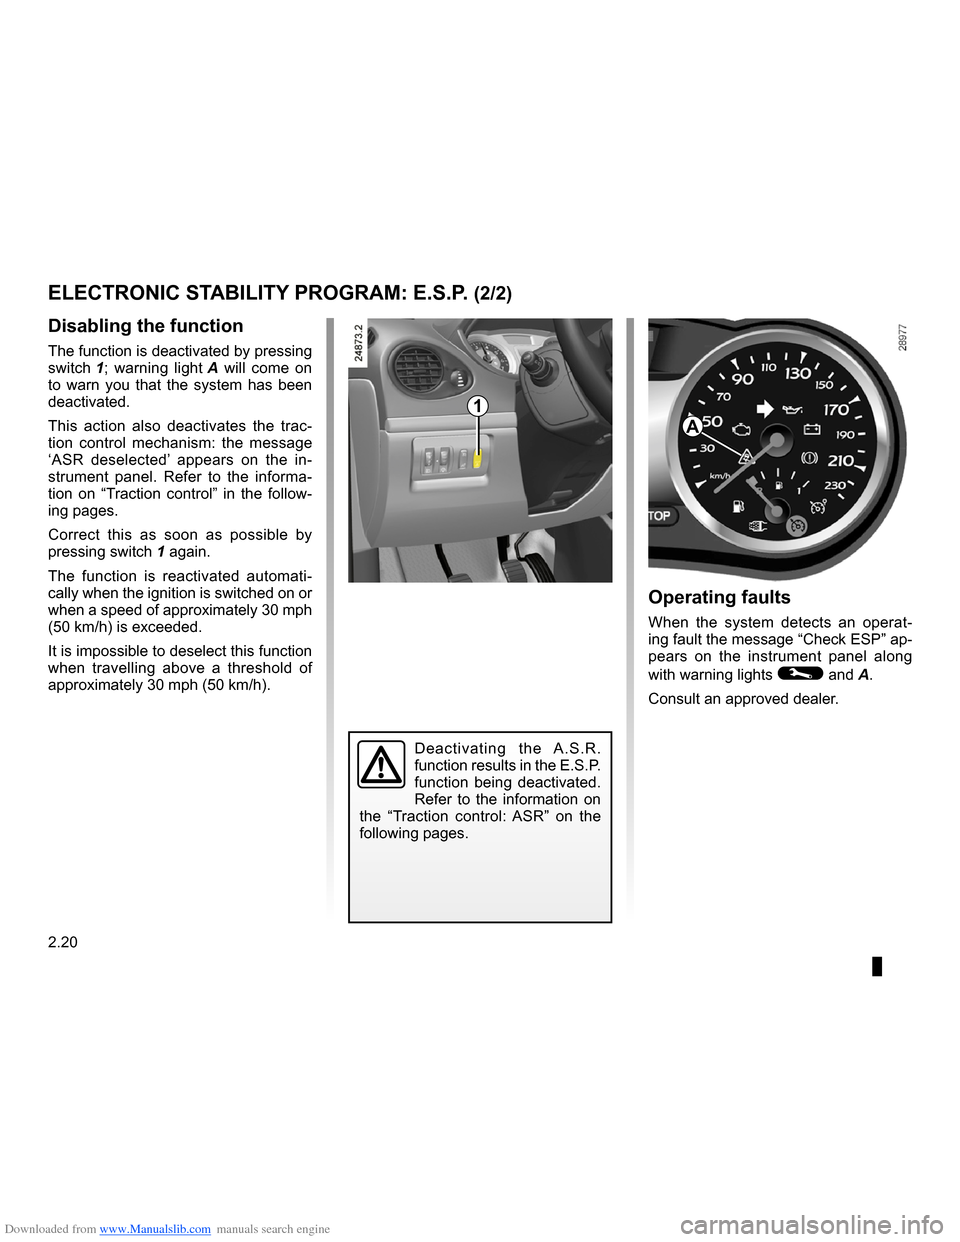 RENAULT CLIO 2009 X85 / 3.G Owners Manual, Page 112